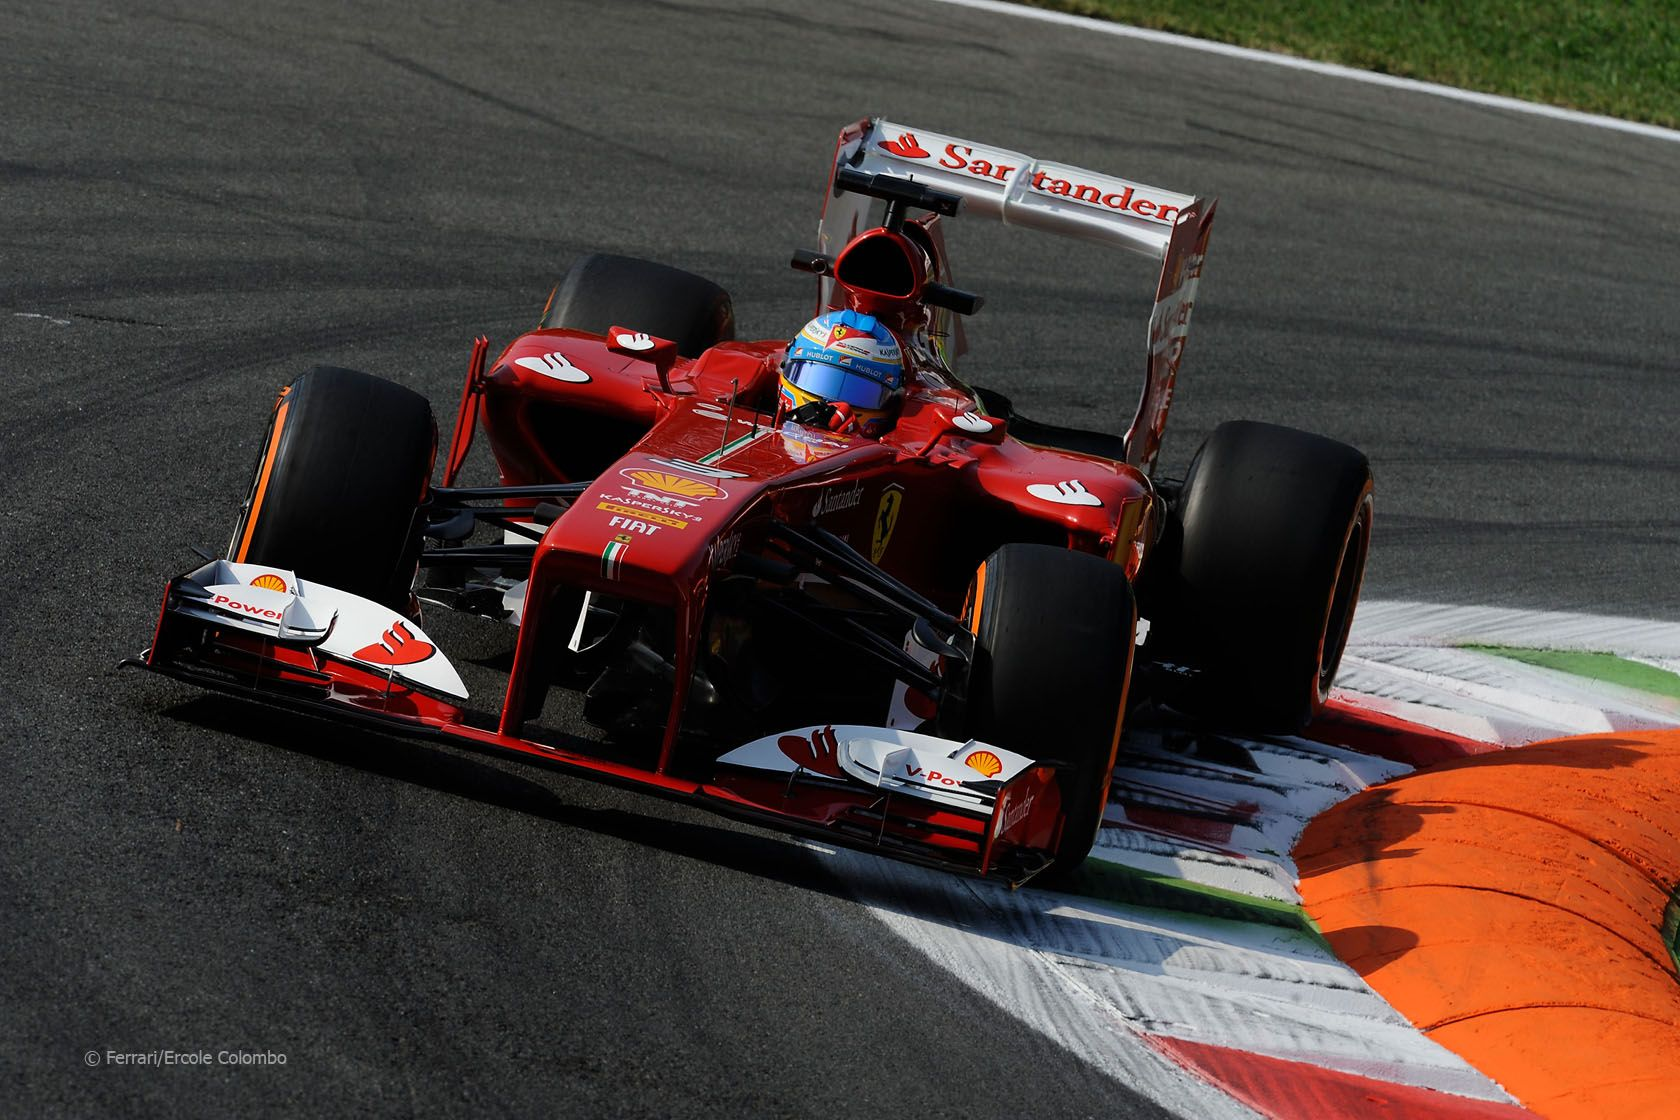 F1 - 2013 - Italy - Ferrari's Alonso in P2 at Monza ...